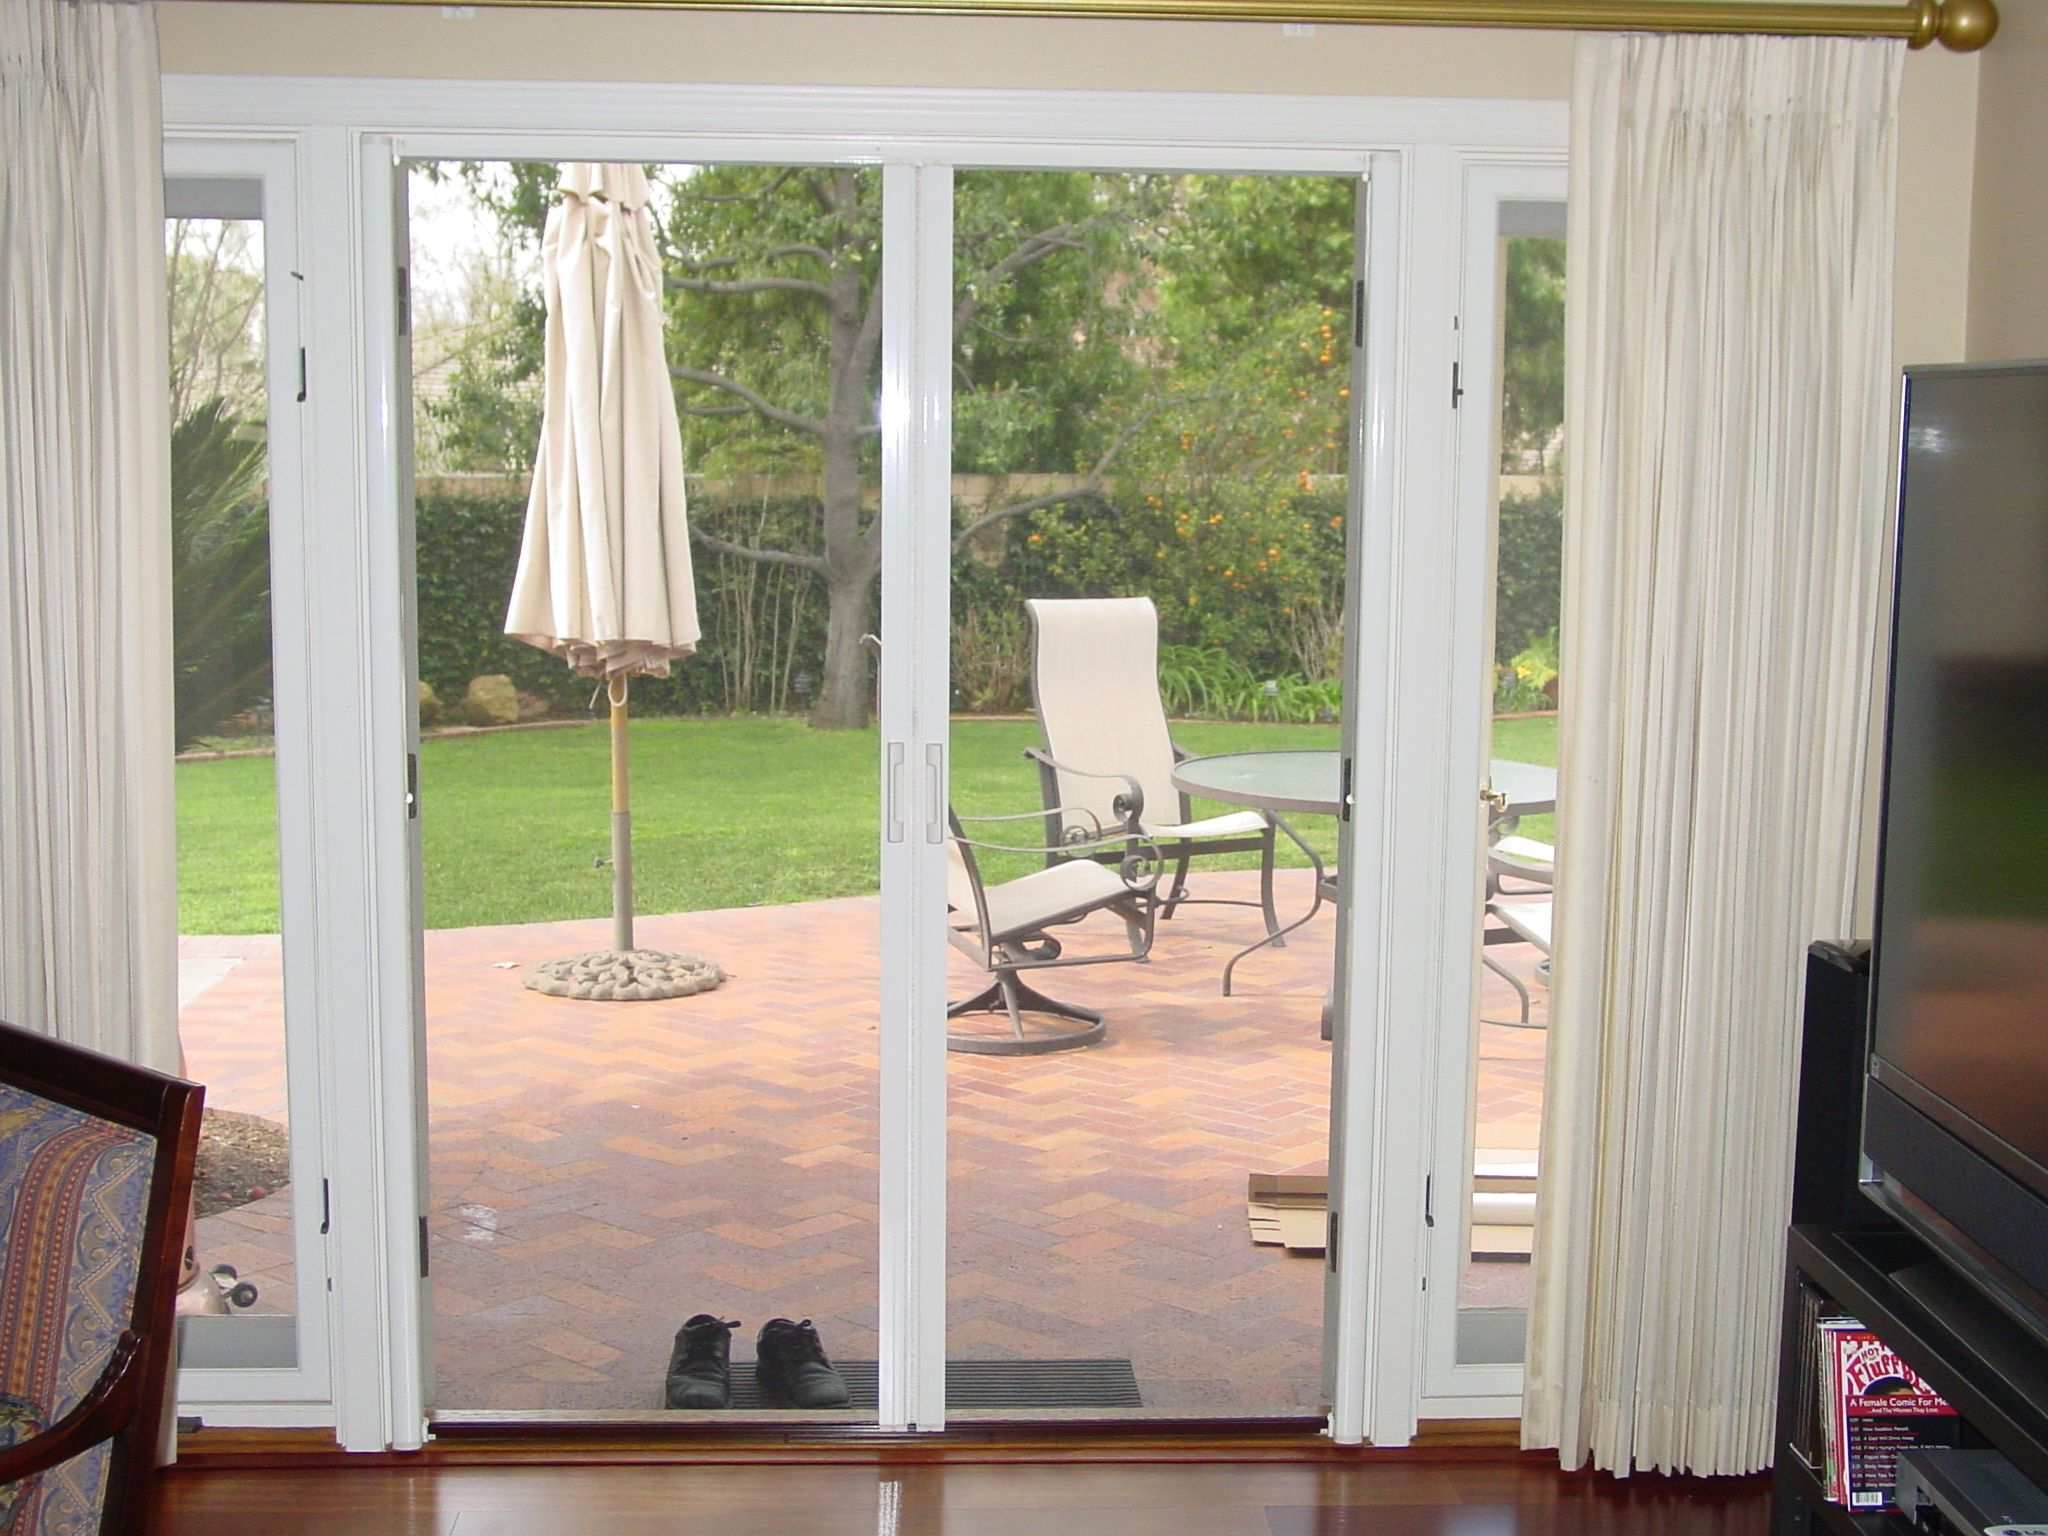 Charming Retractable Screen Door Mounted Inside Home. Doors Swing Out. Bright White.  Photo By